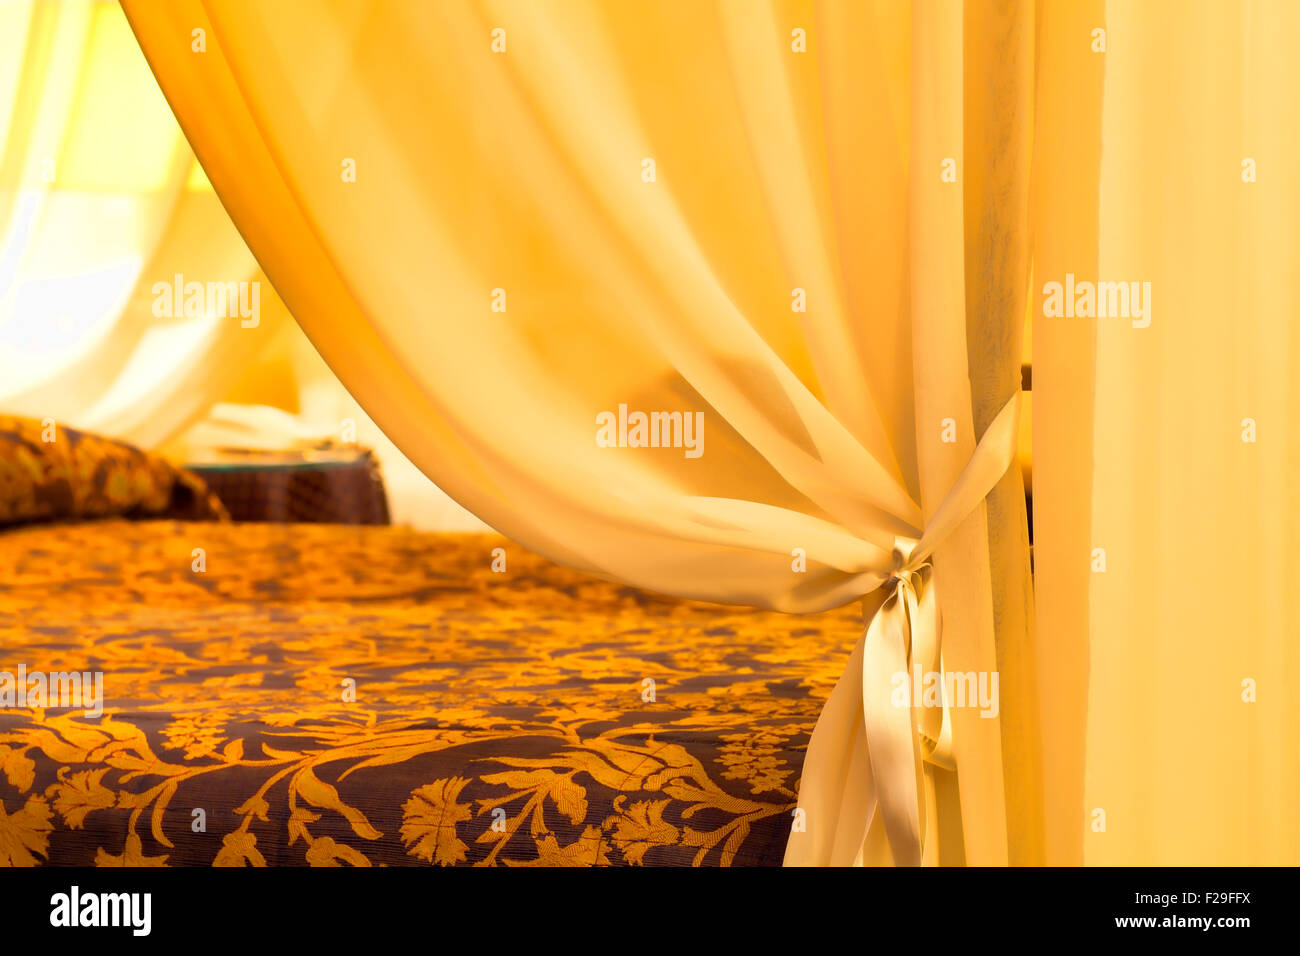 Classic Tent next to the bed - Stock Image